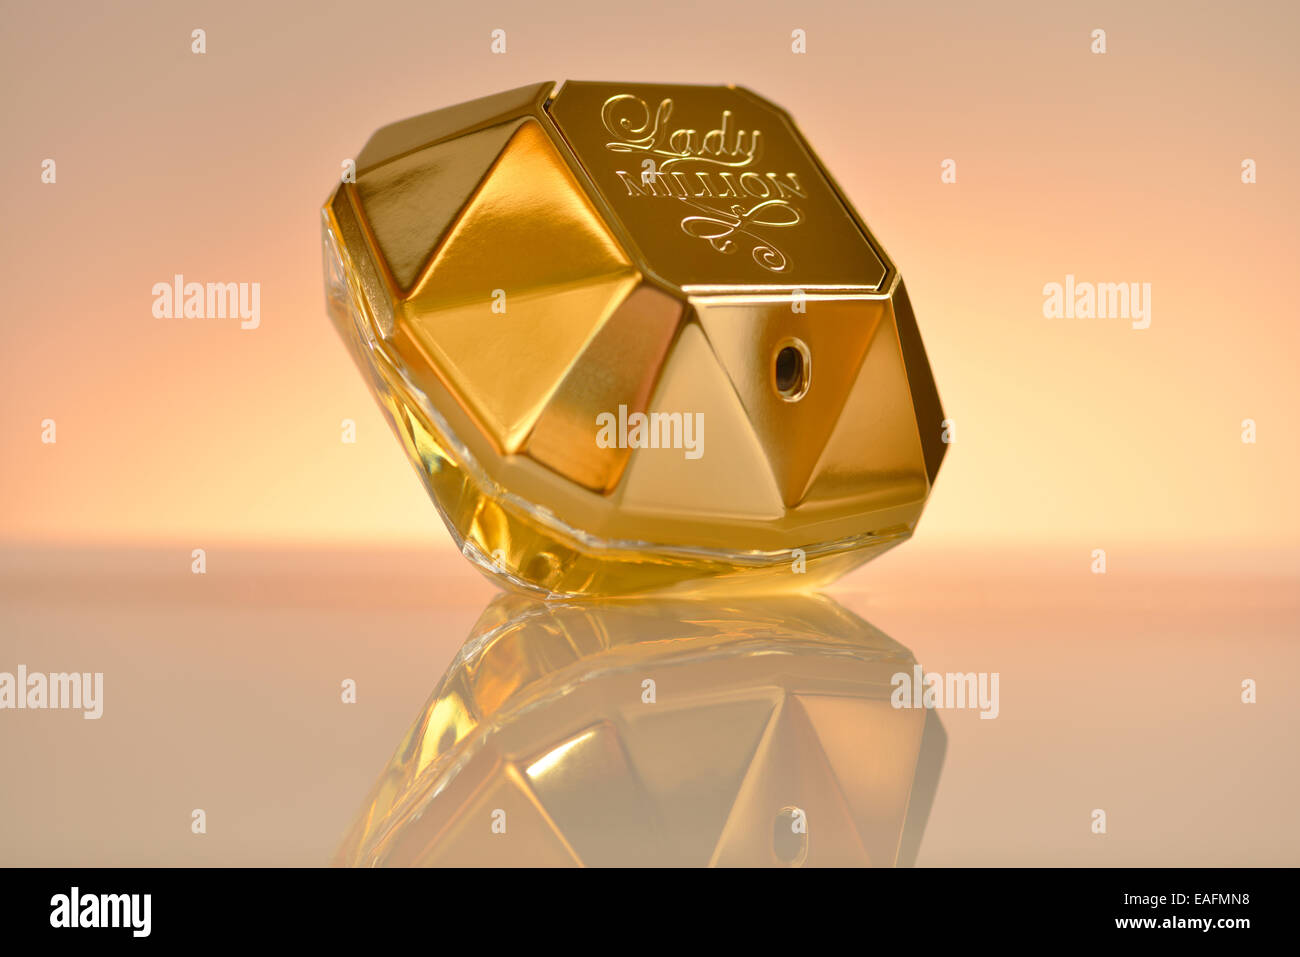 Bottle of Lady Million perfume by Paco Rabane - Stock Image